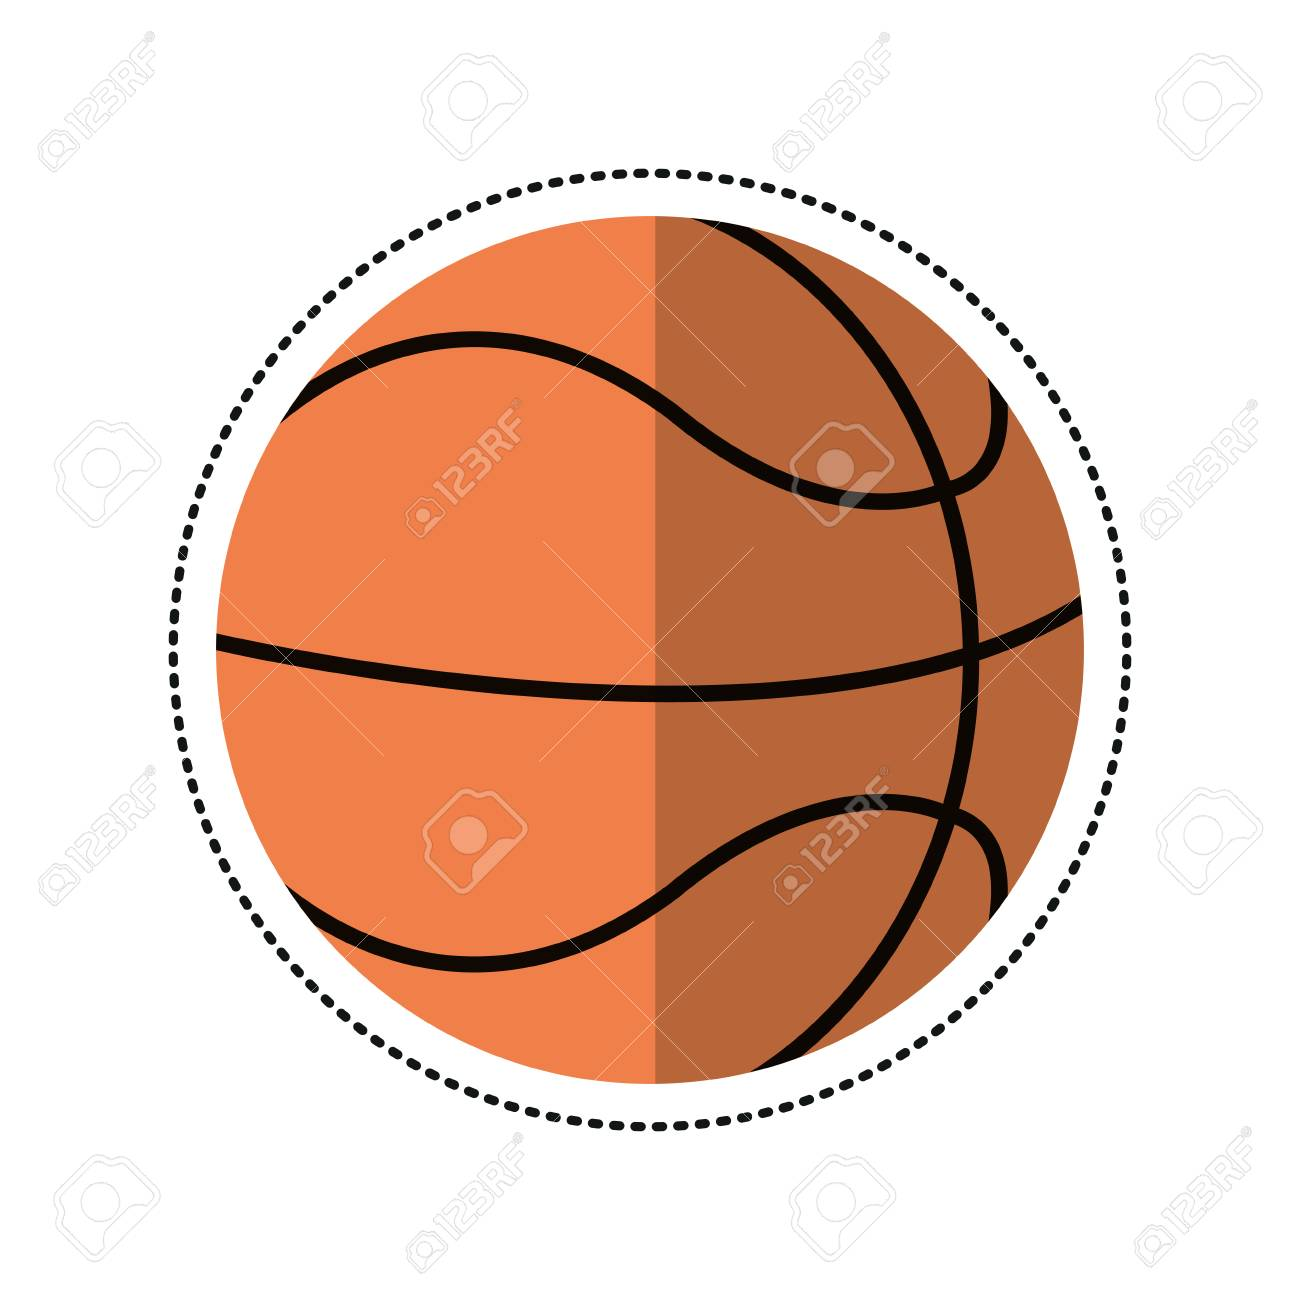 Basketball Ball Cartoon Basketball Ball Play Vector Illustration Eps 10